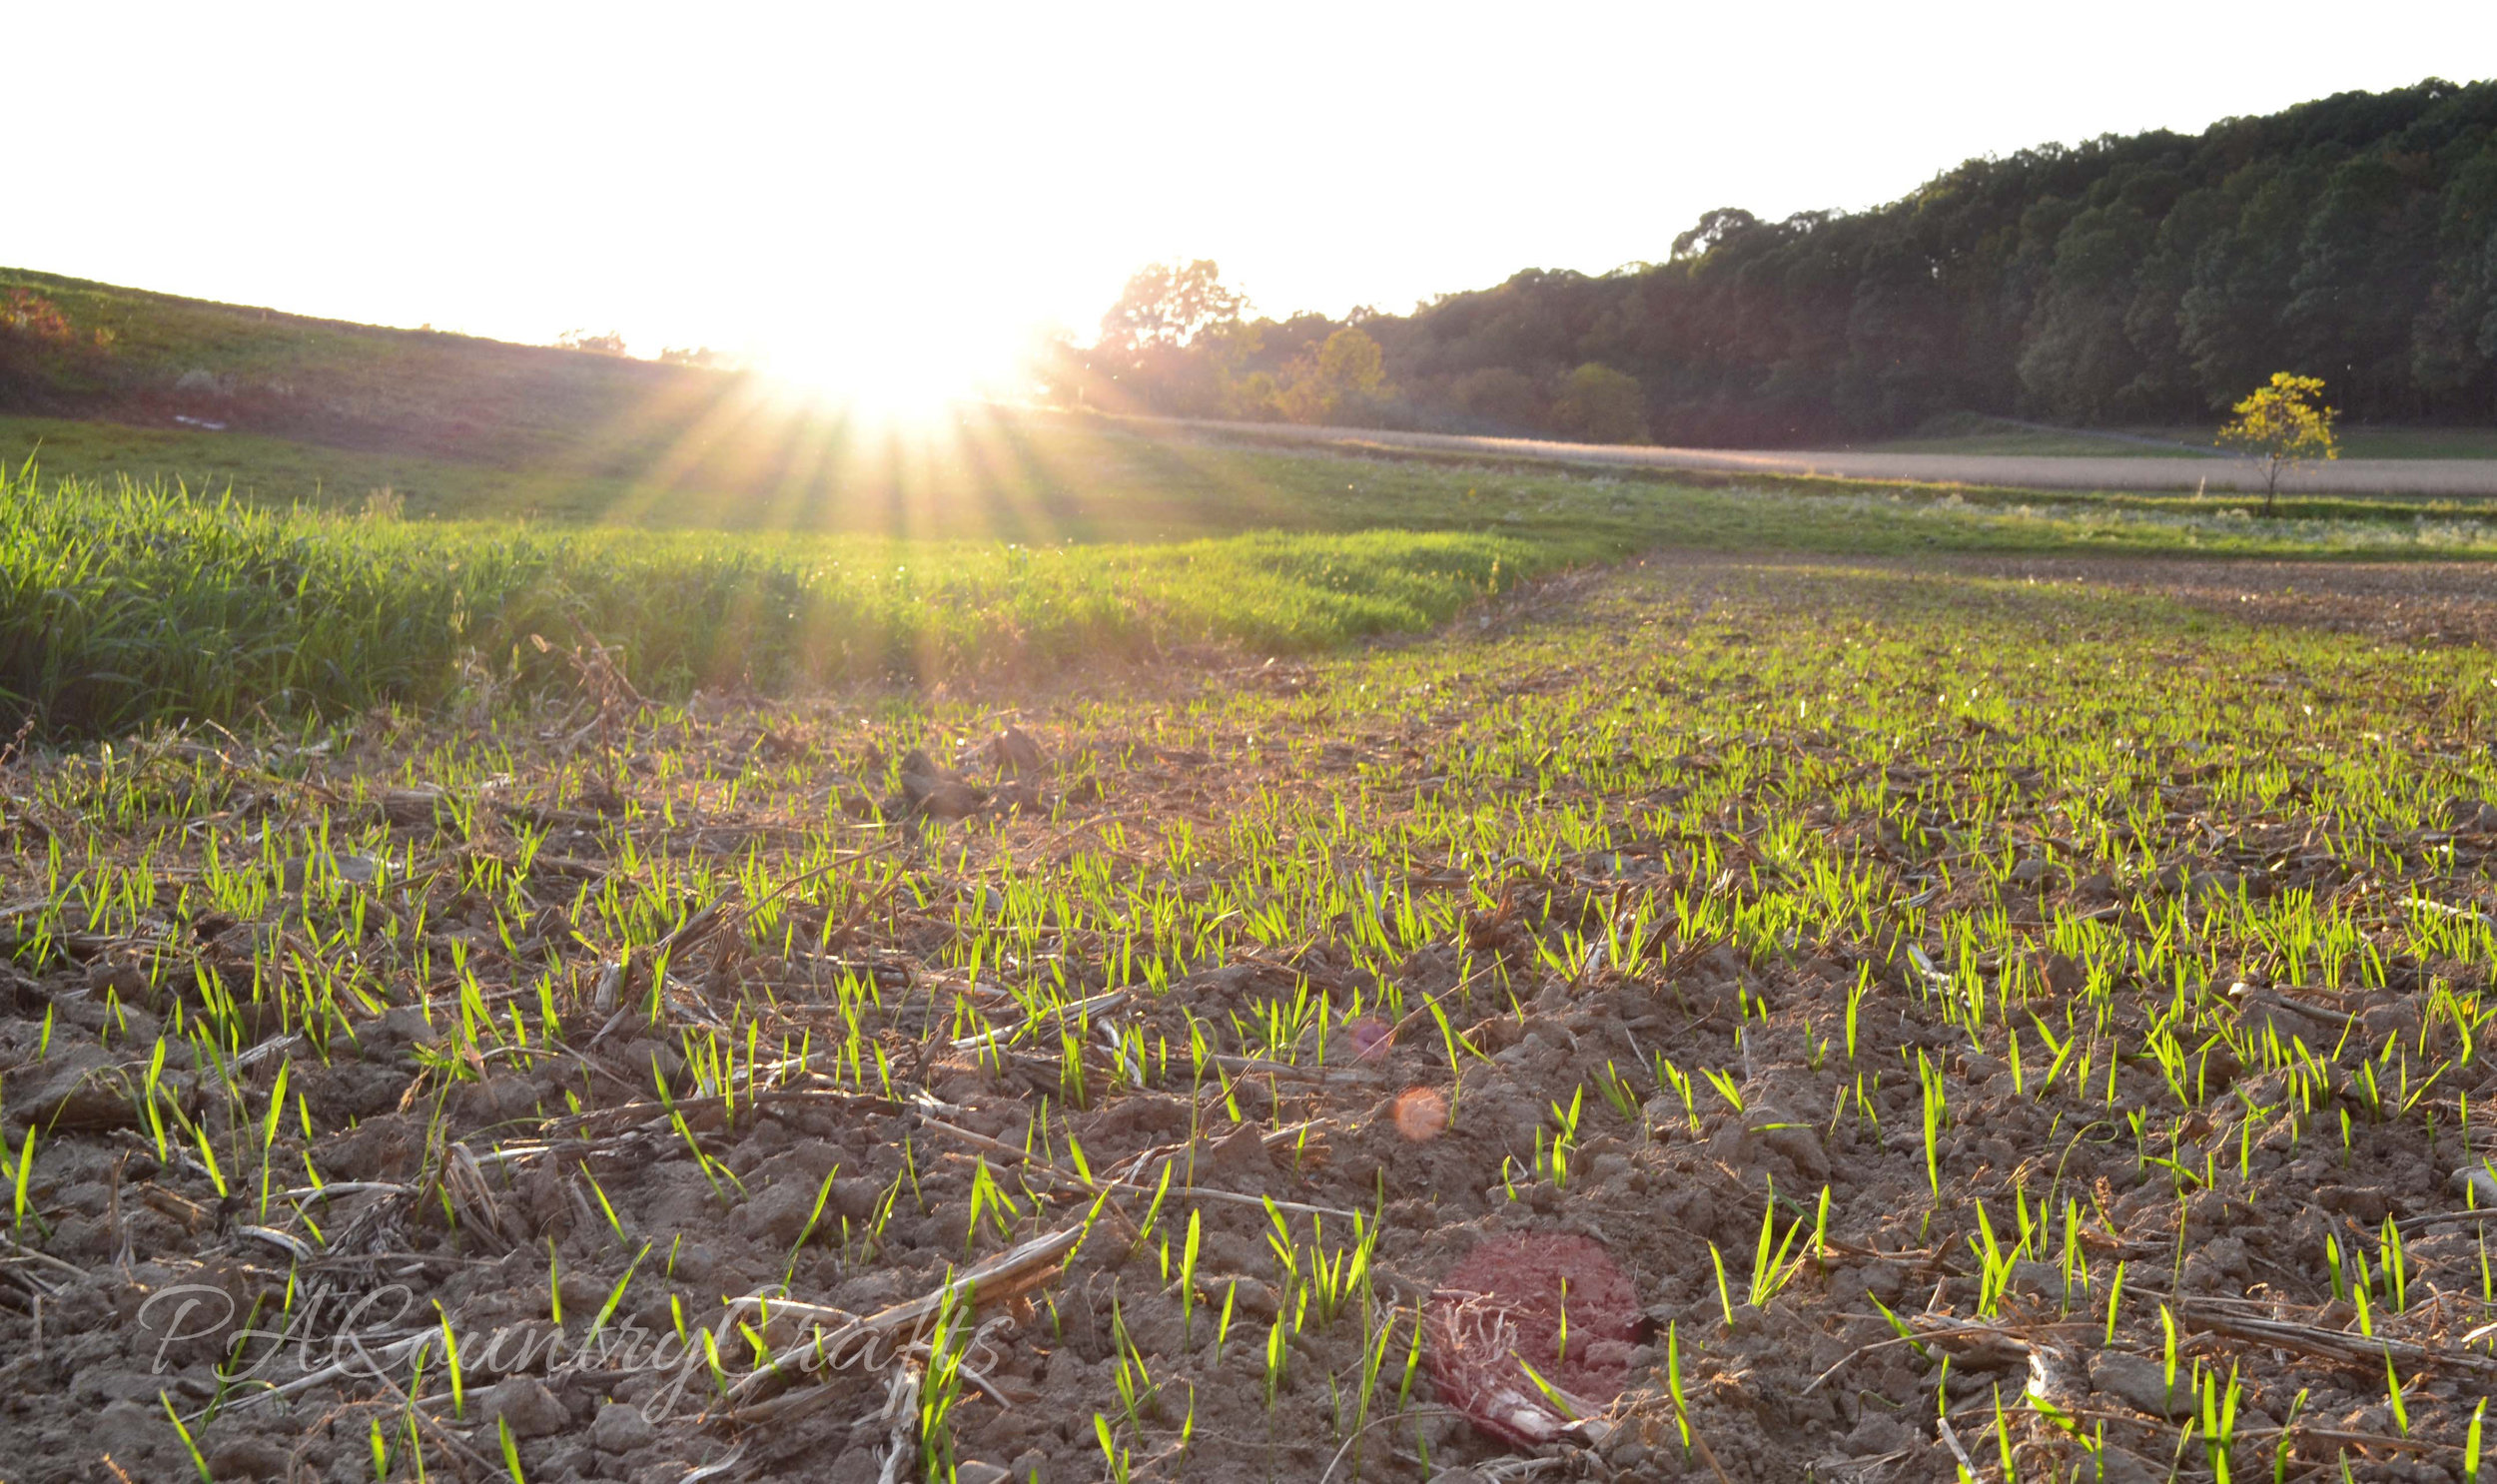 sunlight over oats sprouting